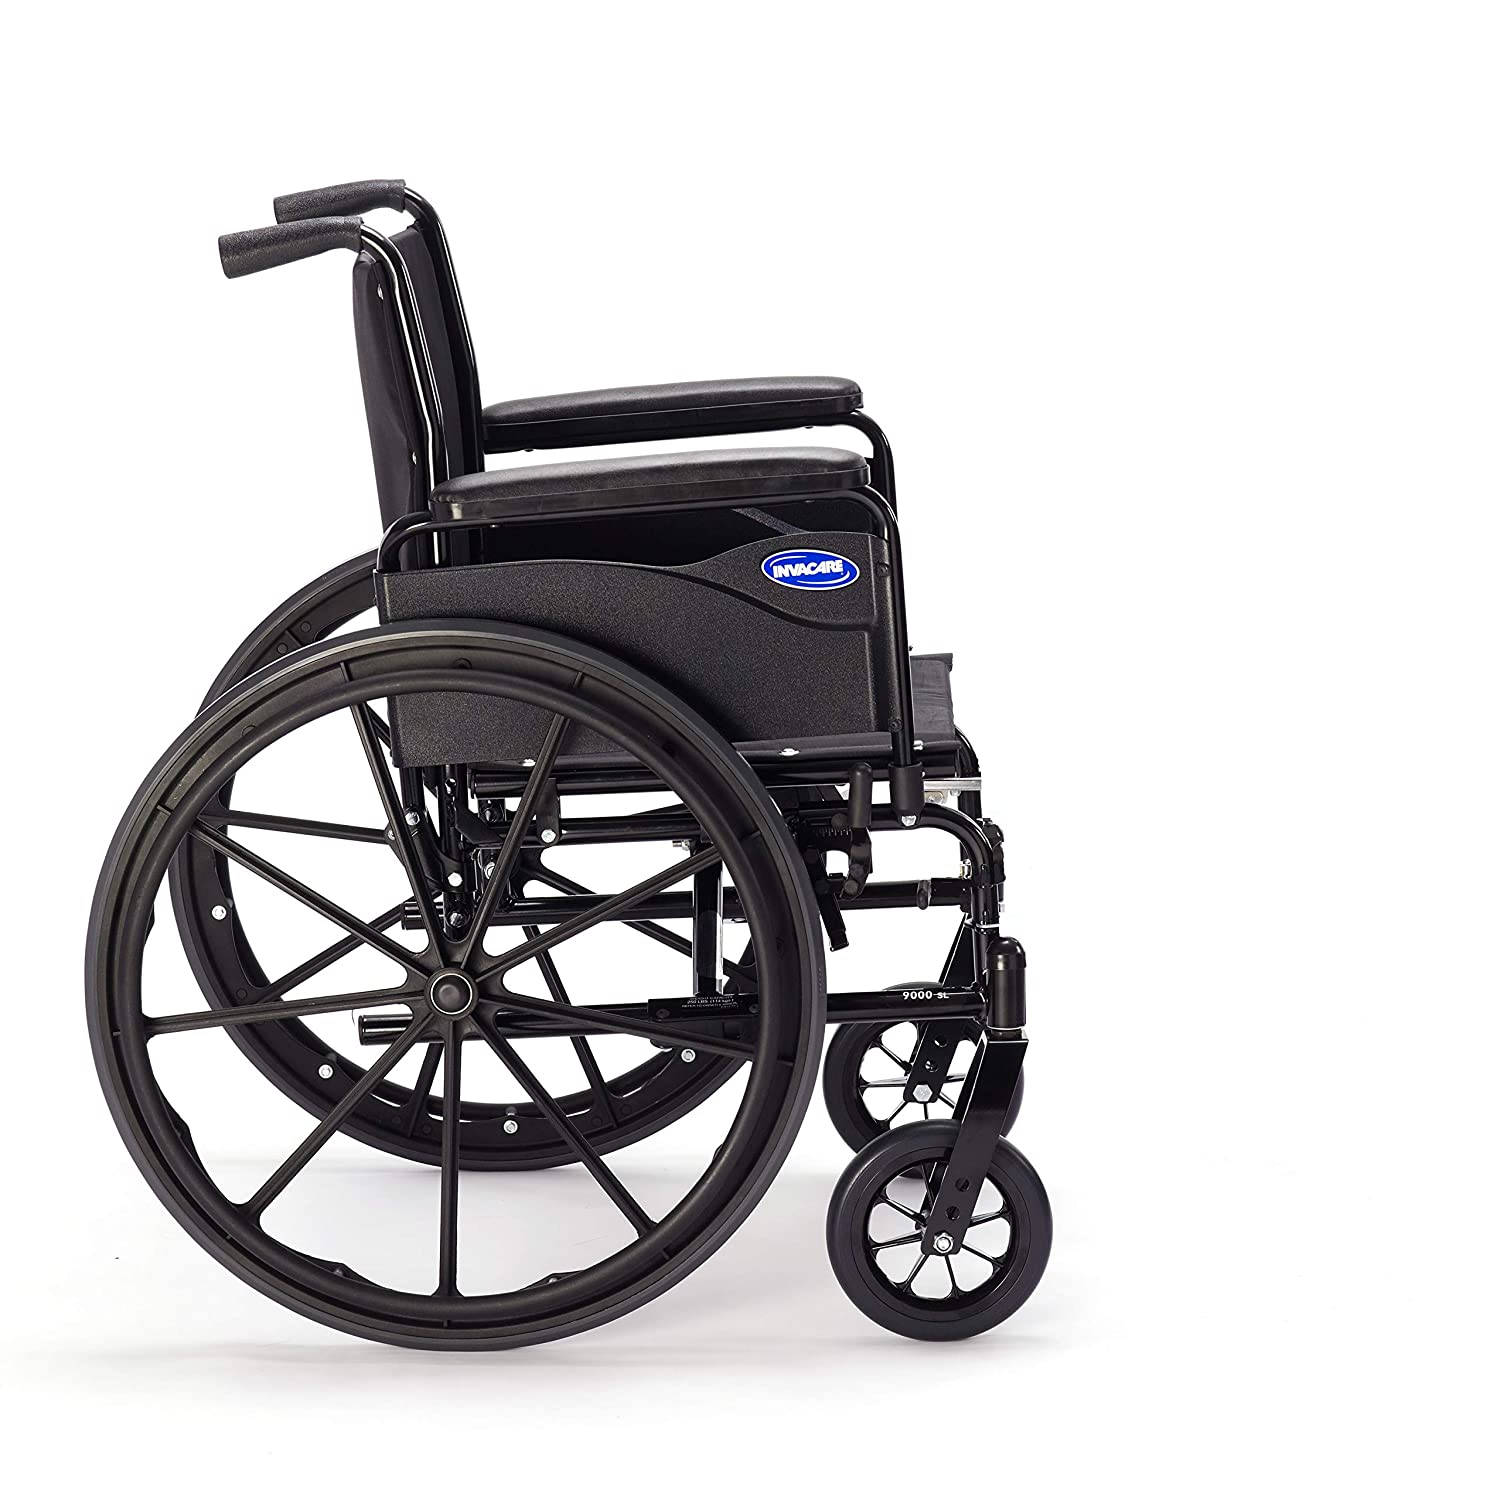 Invacare 9000 SL Durable Light Weight Wheelchair, Full-Length Arms, 18